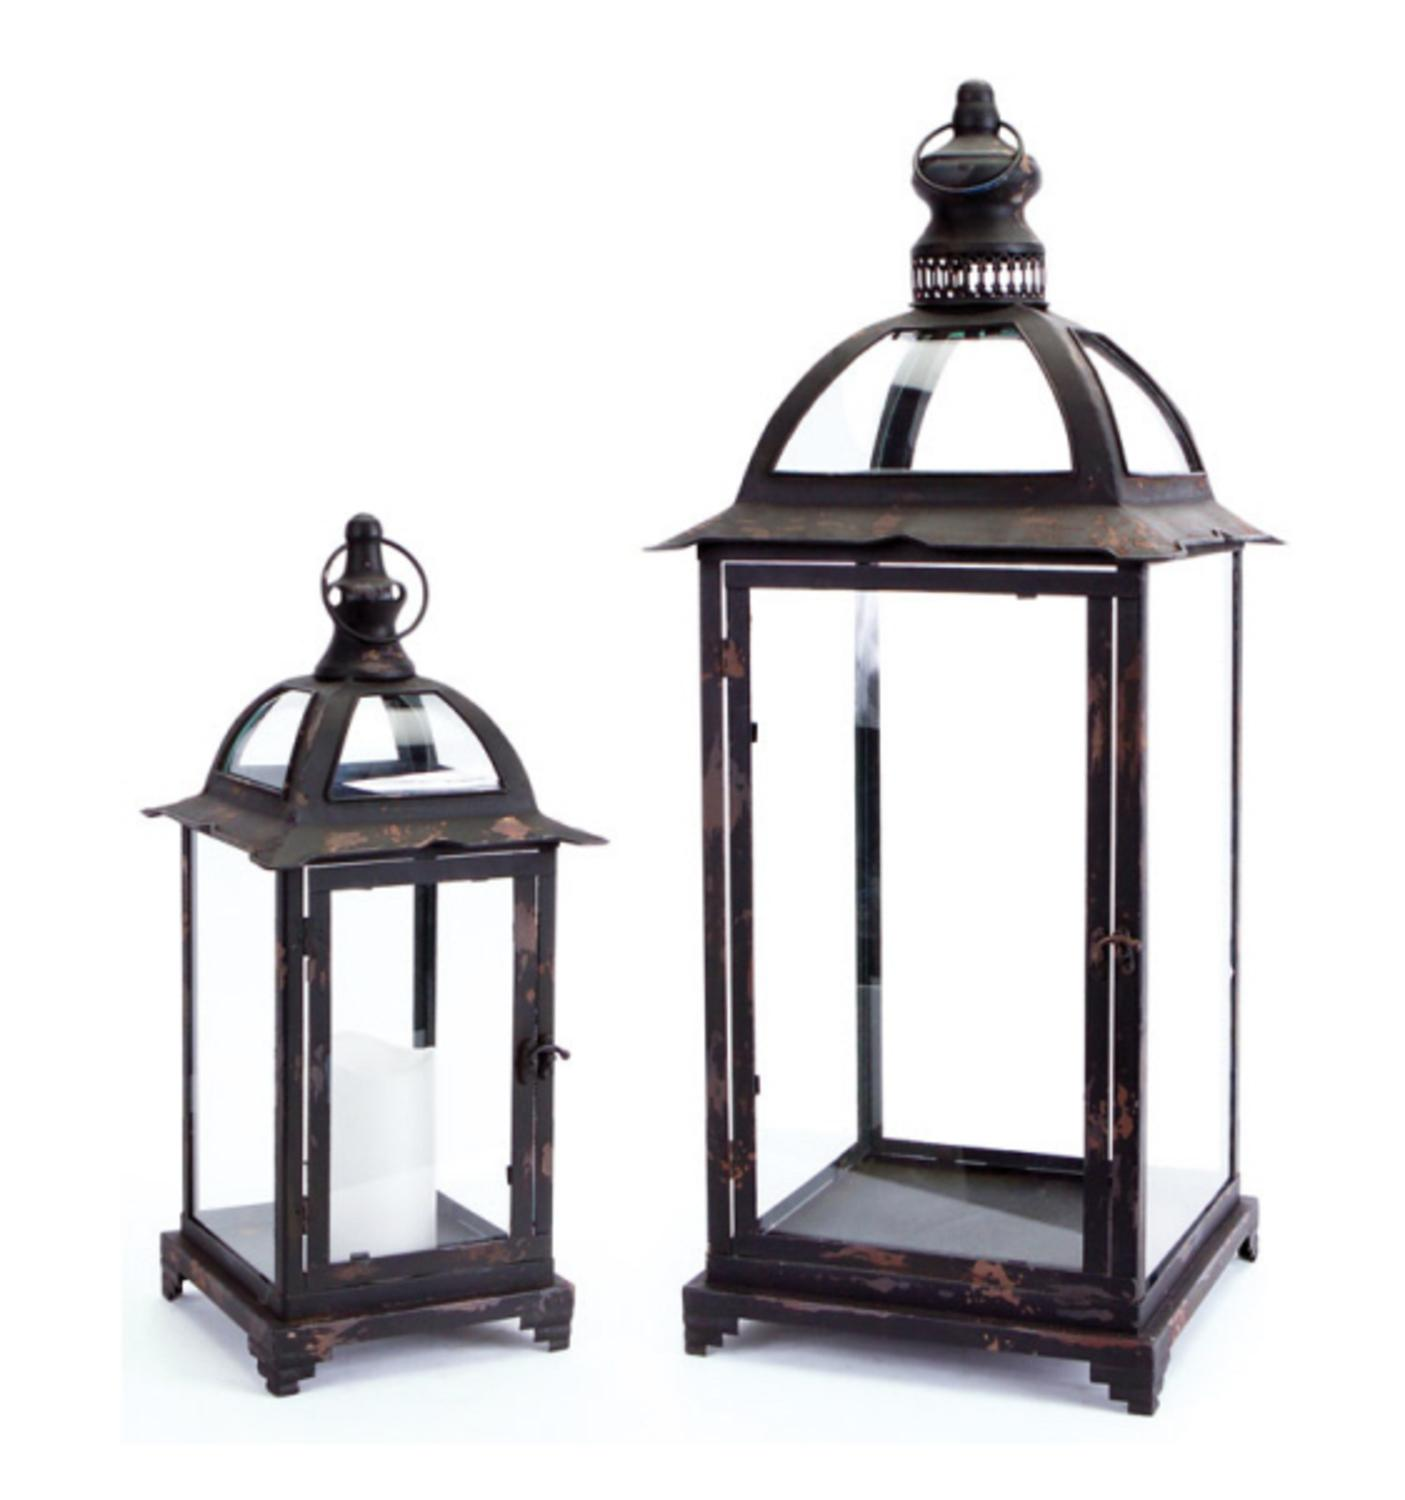 Set of 2 Pagoda Crest Weathered Iron and Glass Pillar Candle Holder Lanterns 26""